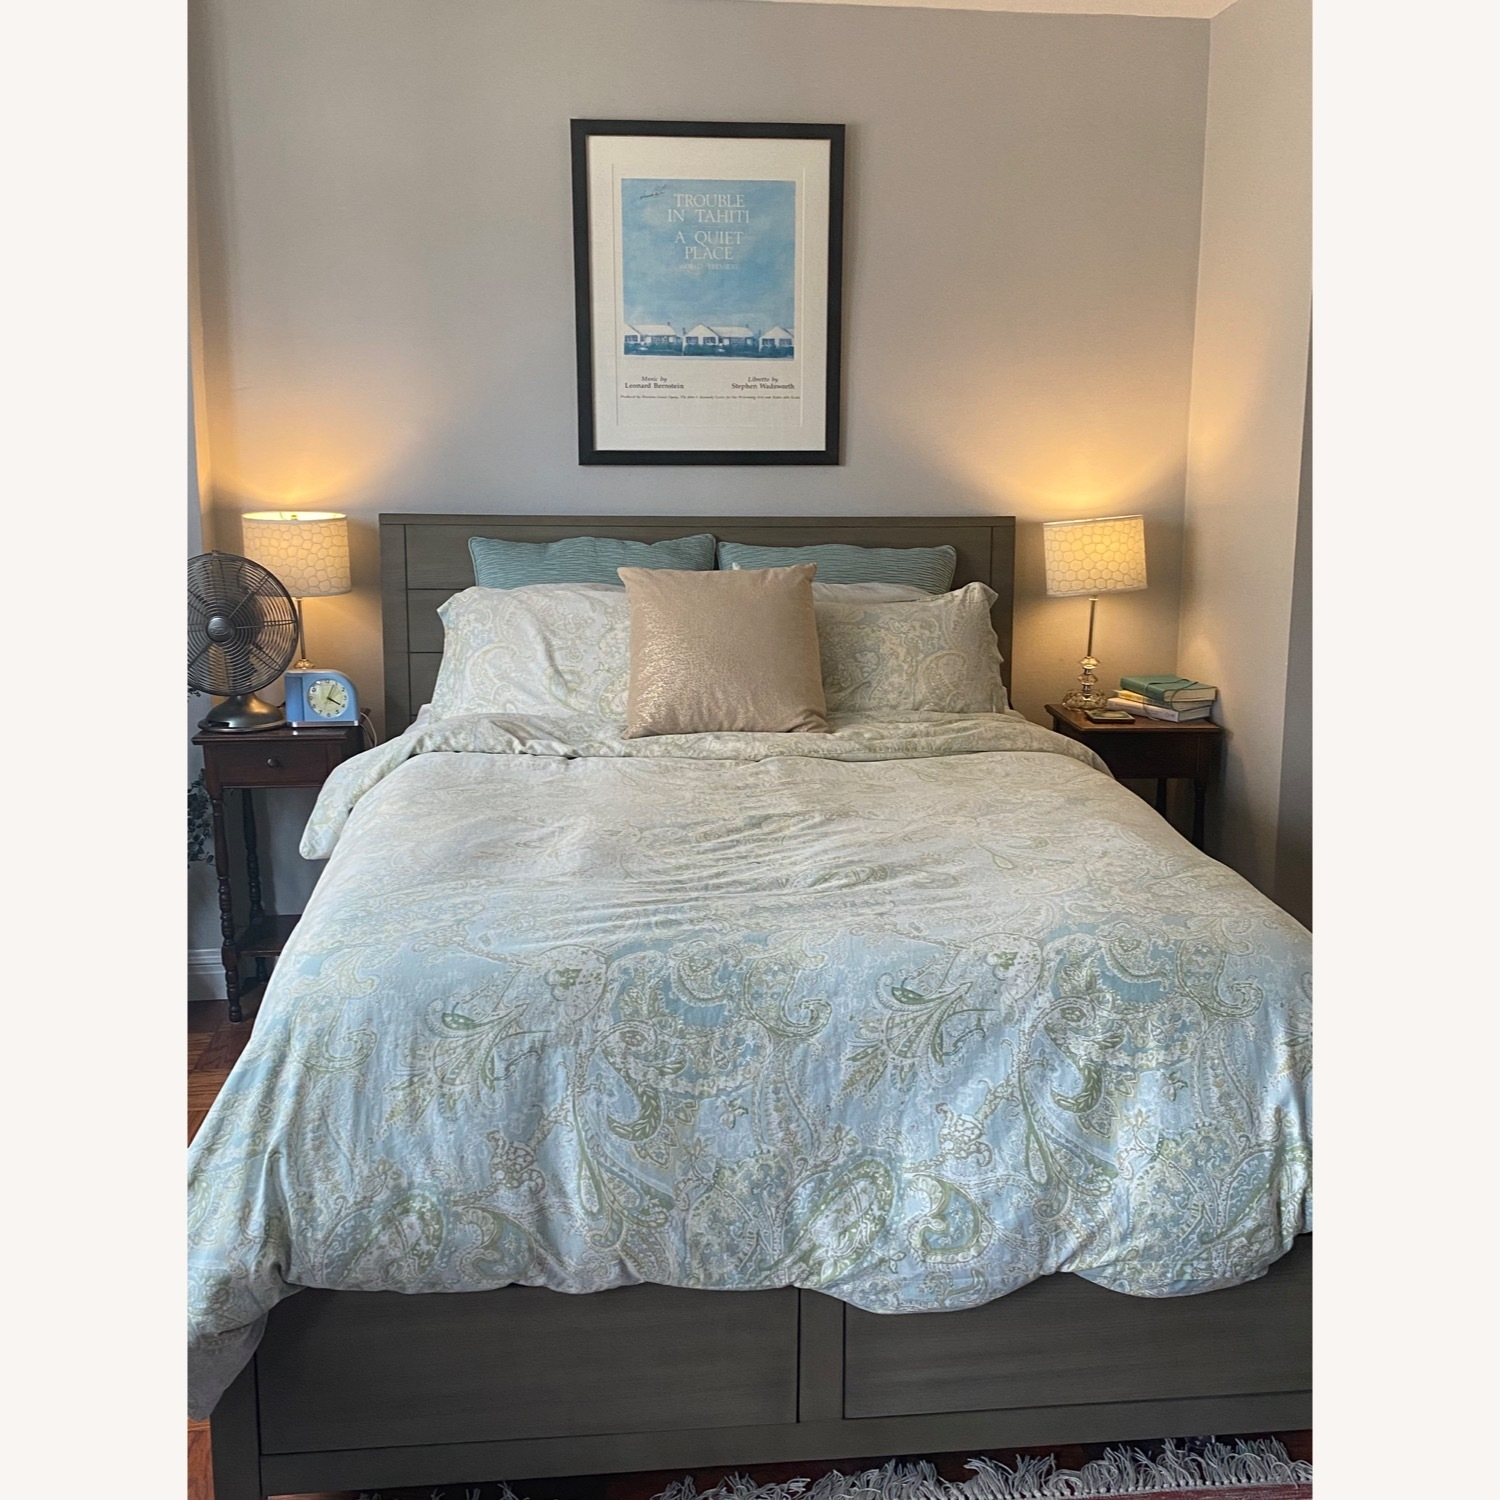 Macy's Queen Size Bed with Storage - image-1